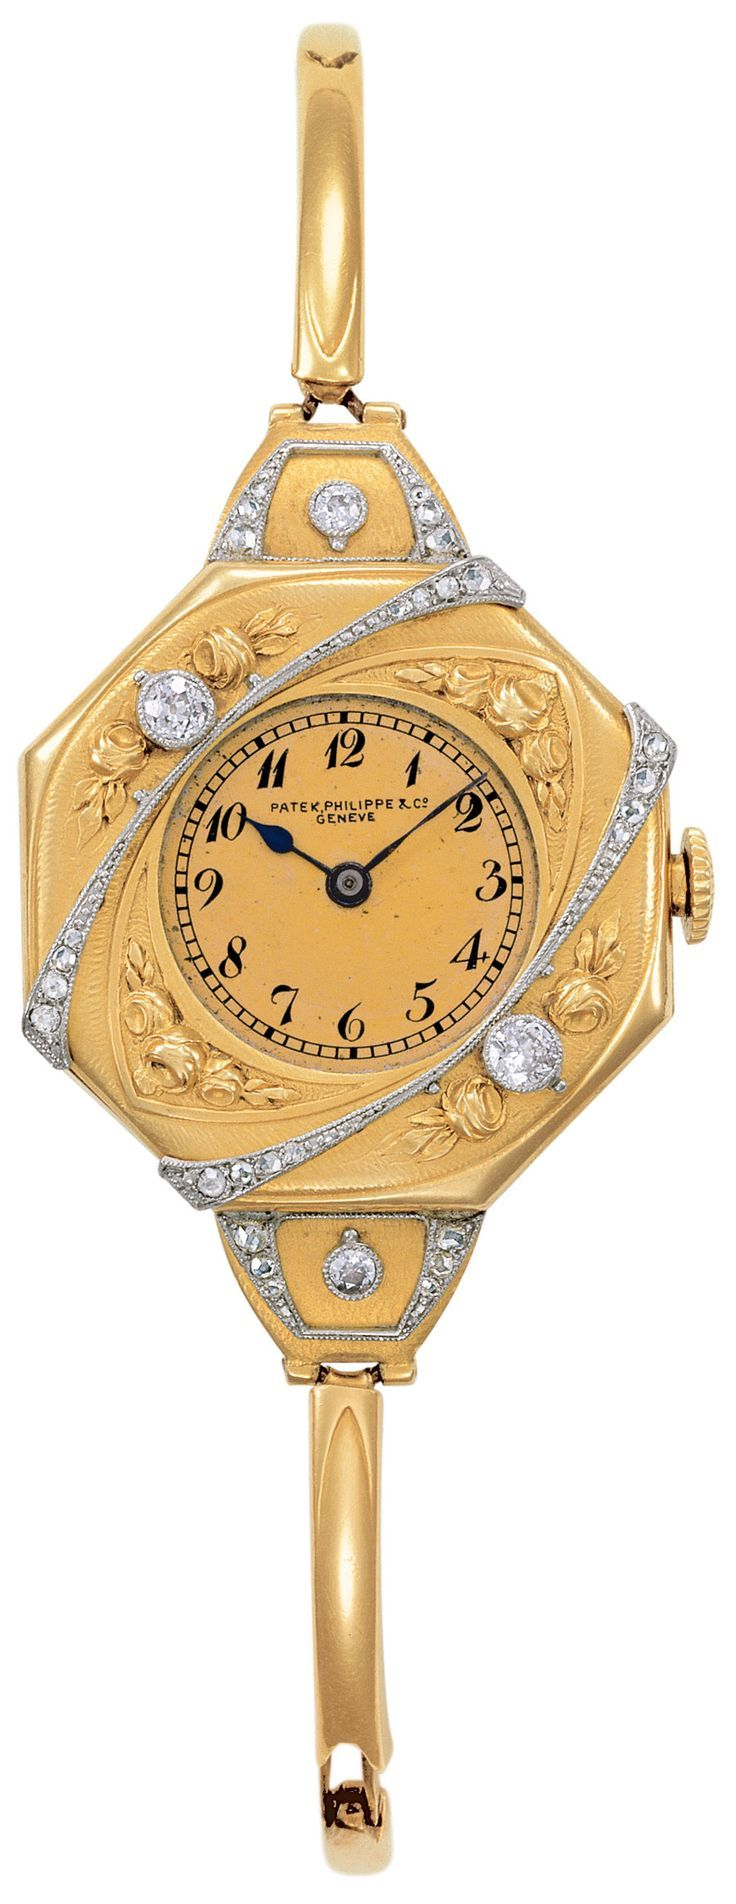 Wondrous Women's Watch From Patek Philippe in a Yellow and White Gold Bracelet Style, Highlighted with Diamonds and Black Numerals & Hands, Stunning!